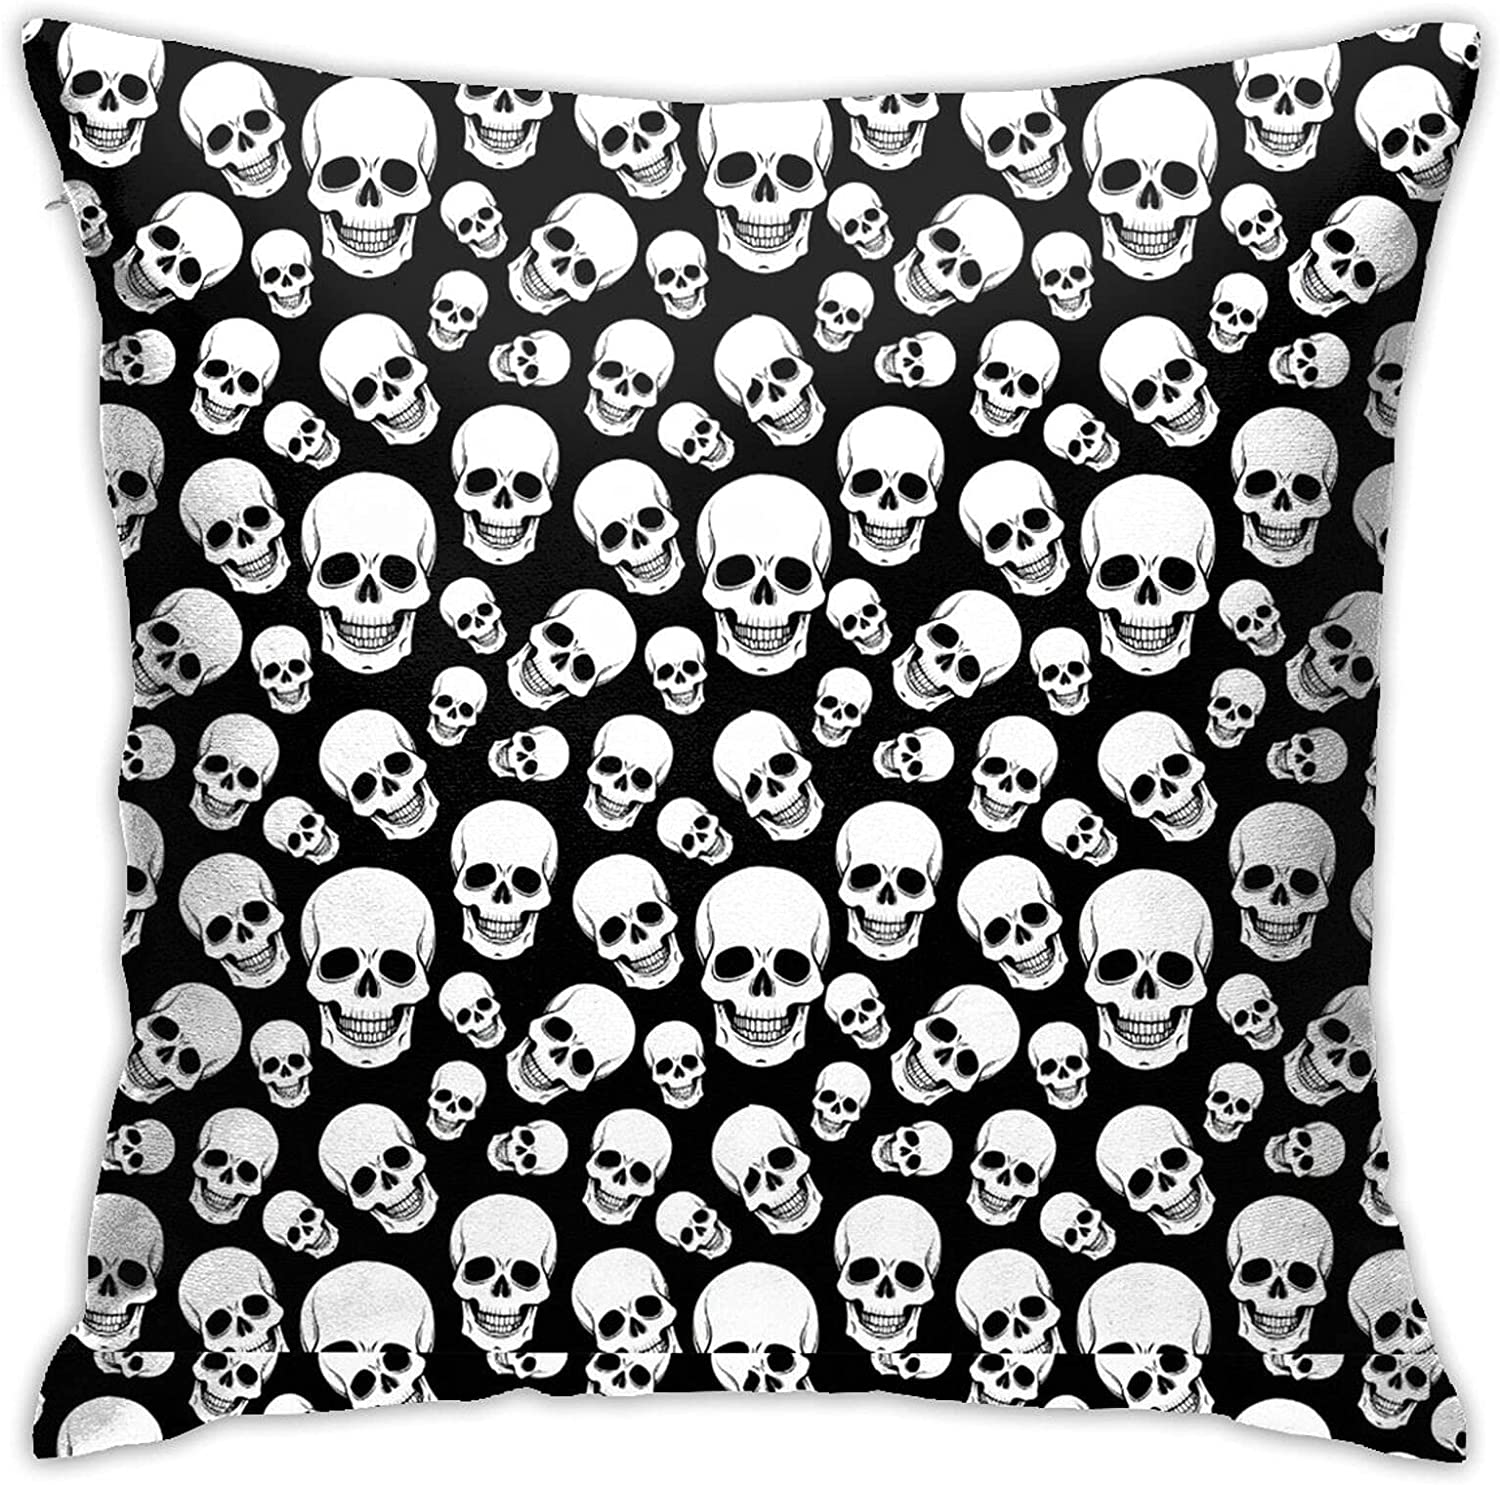 Skull 18 X Inches Cute Design Indoor Couch Pillows Very popular! Bed De and Large discharge sale